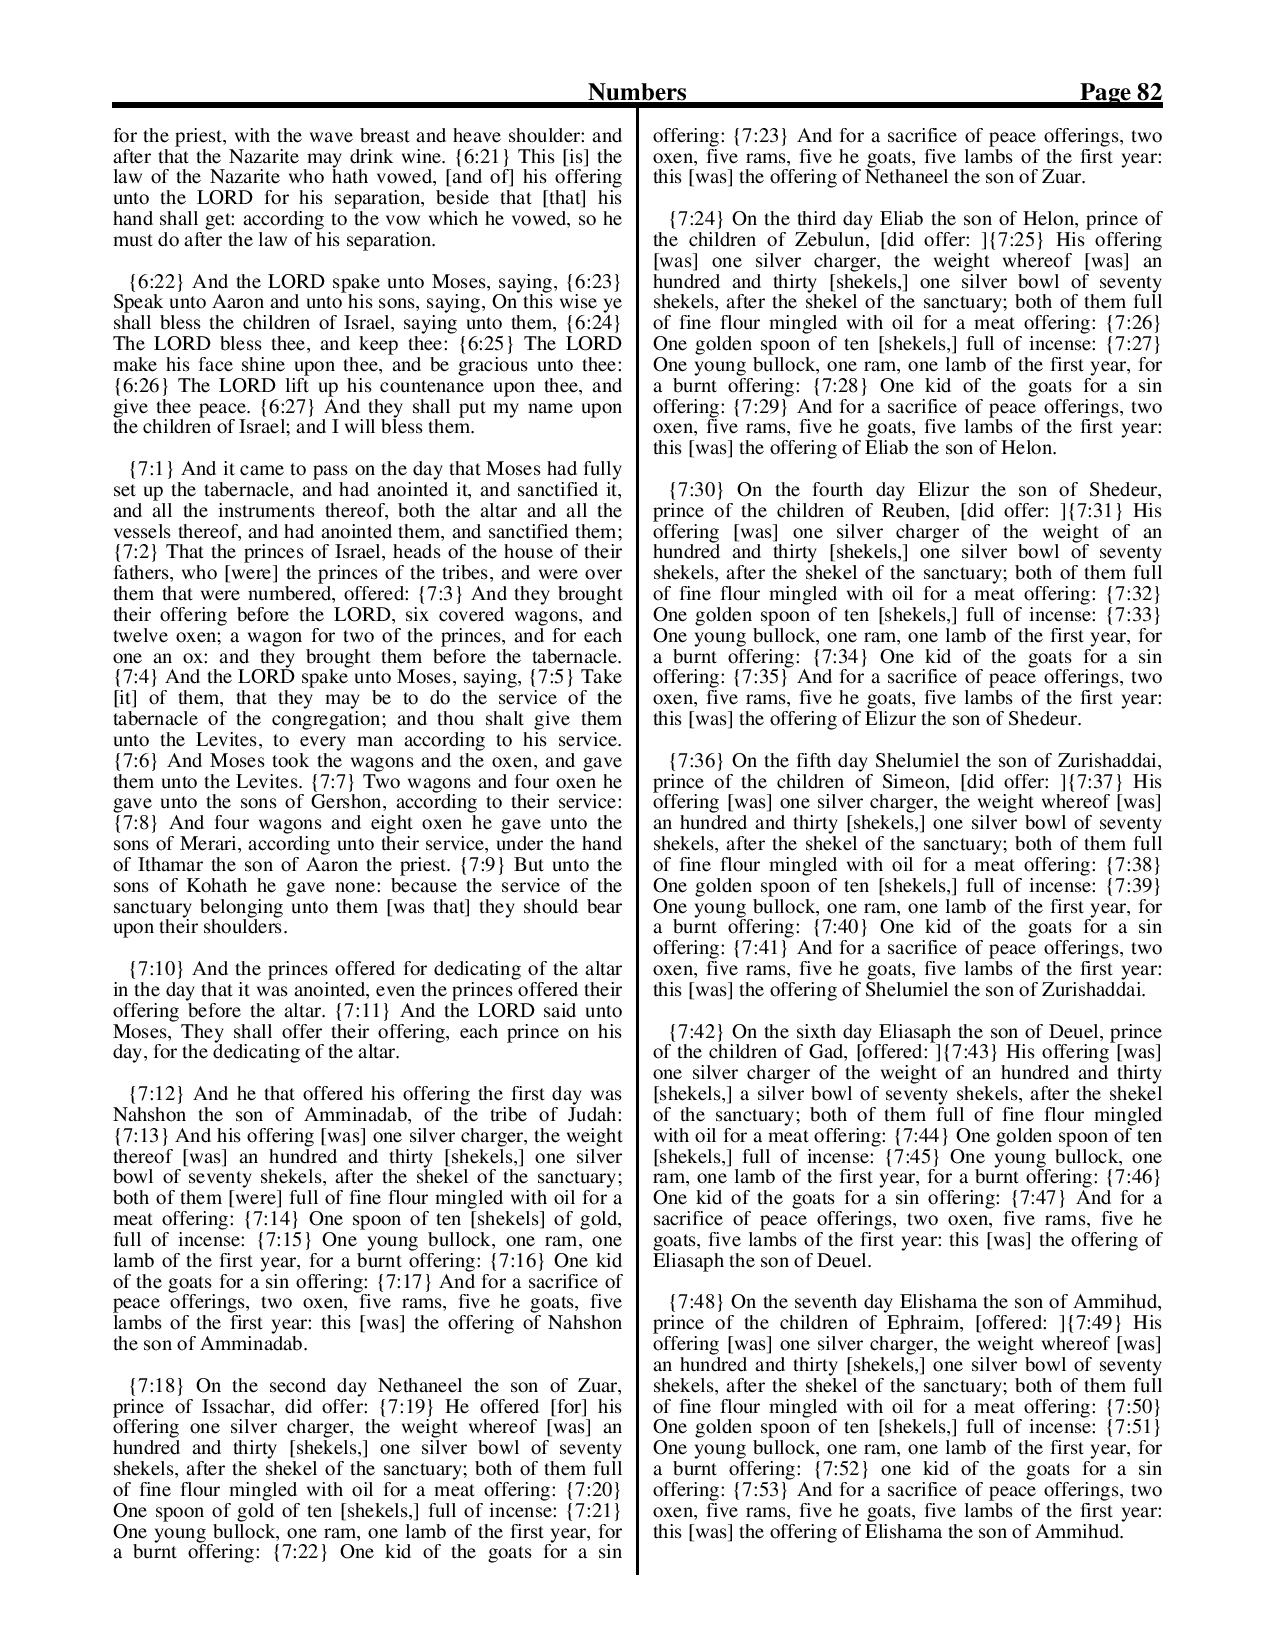 King-James-Bible-KJV-Bible-PDF-page-103